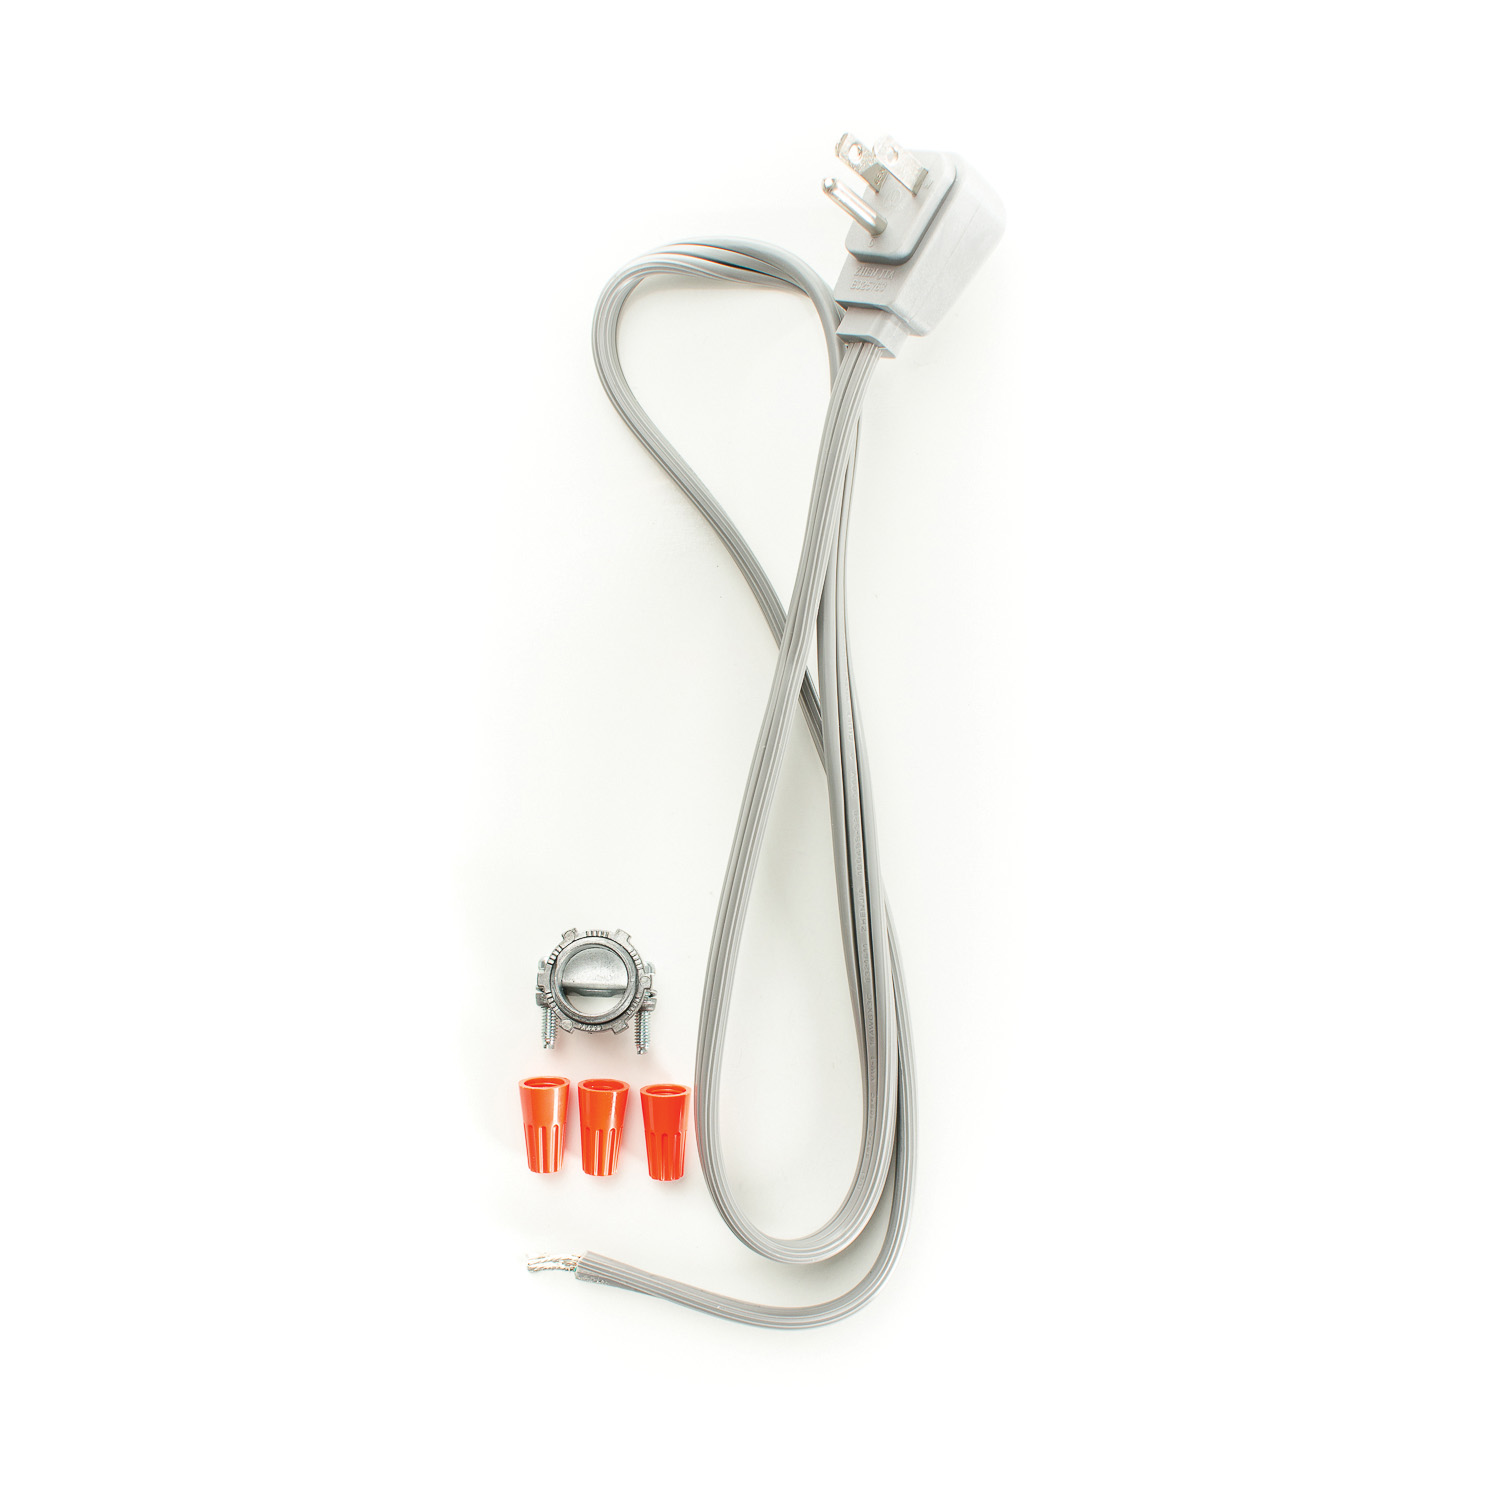 PASCO 8121 SPT Disposal Cord With Angle Cap and Wire Nuts, 3 ft L, 13 A, Romex Pigtail Connector